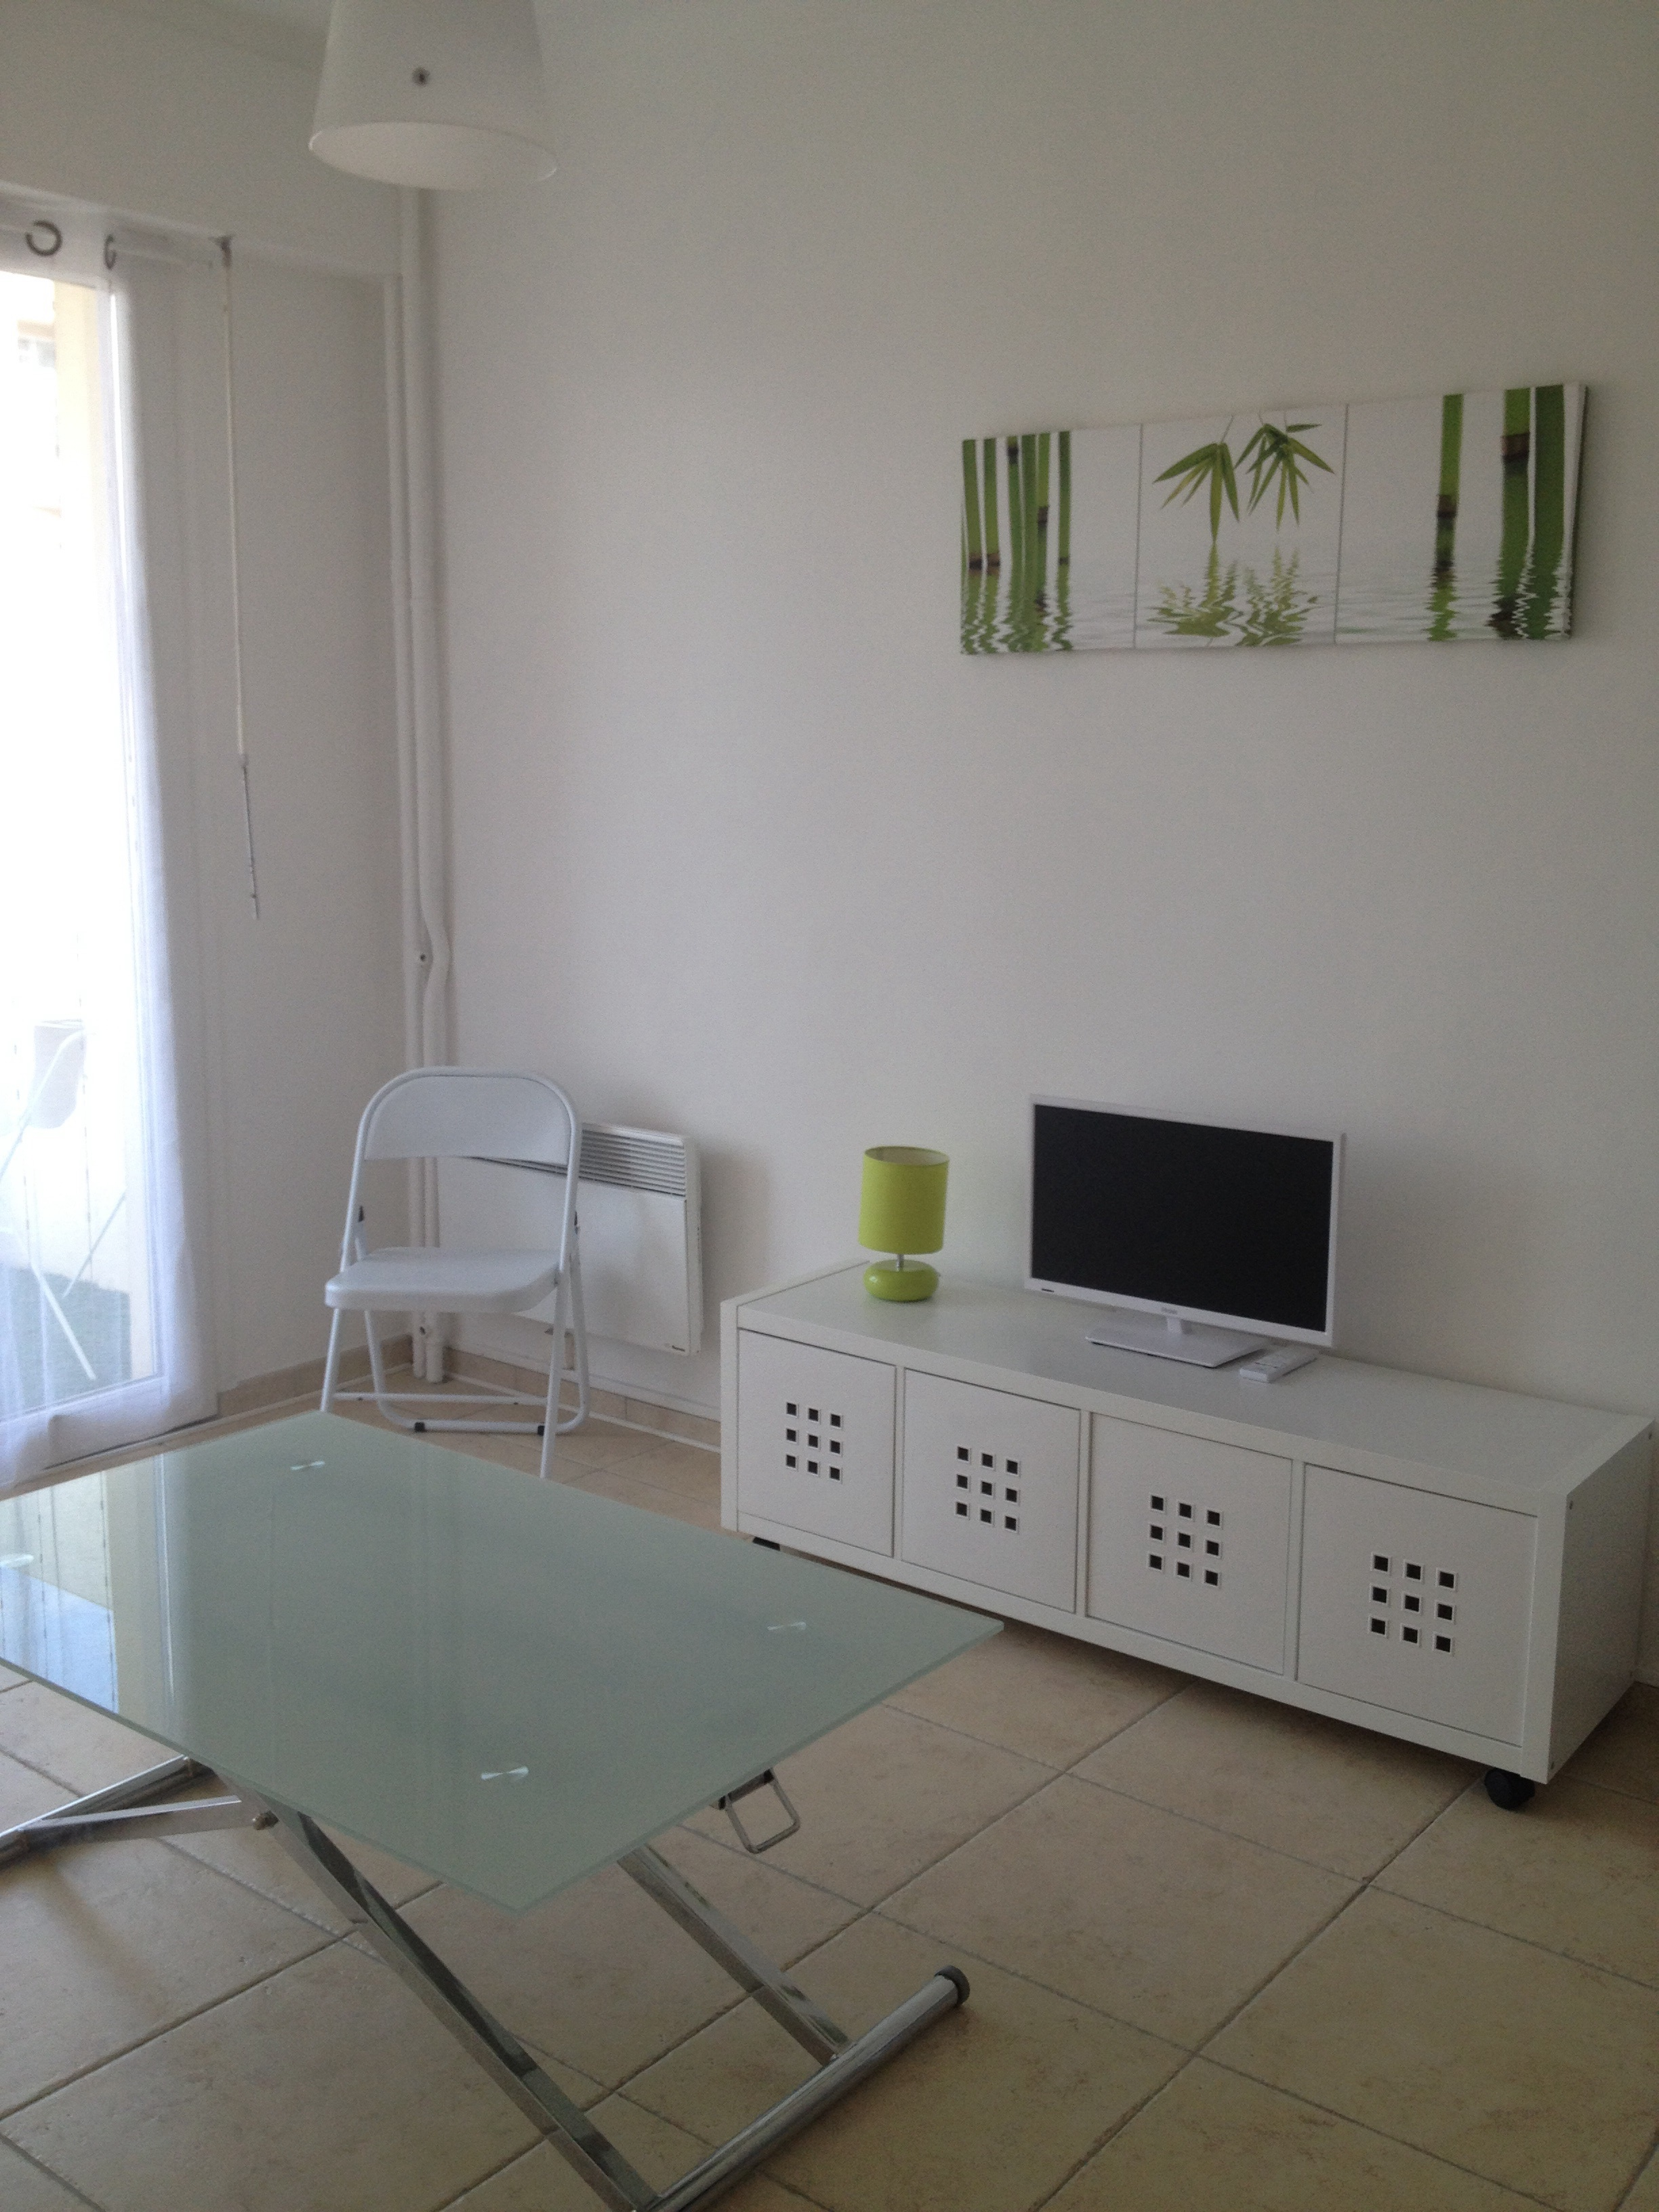 Location tudiant agreable studio meuble avec terrasse for Location studio meuble nice